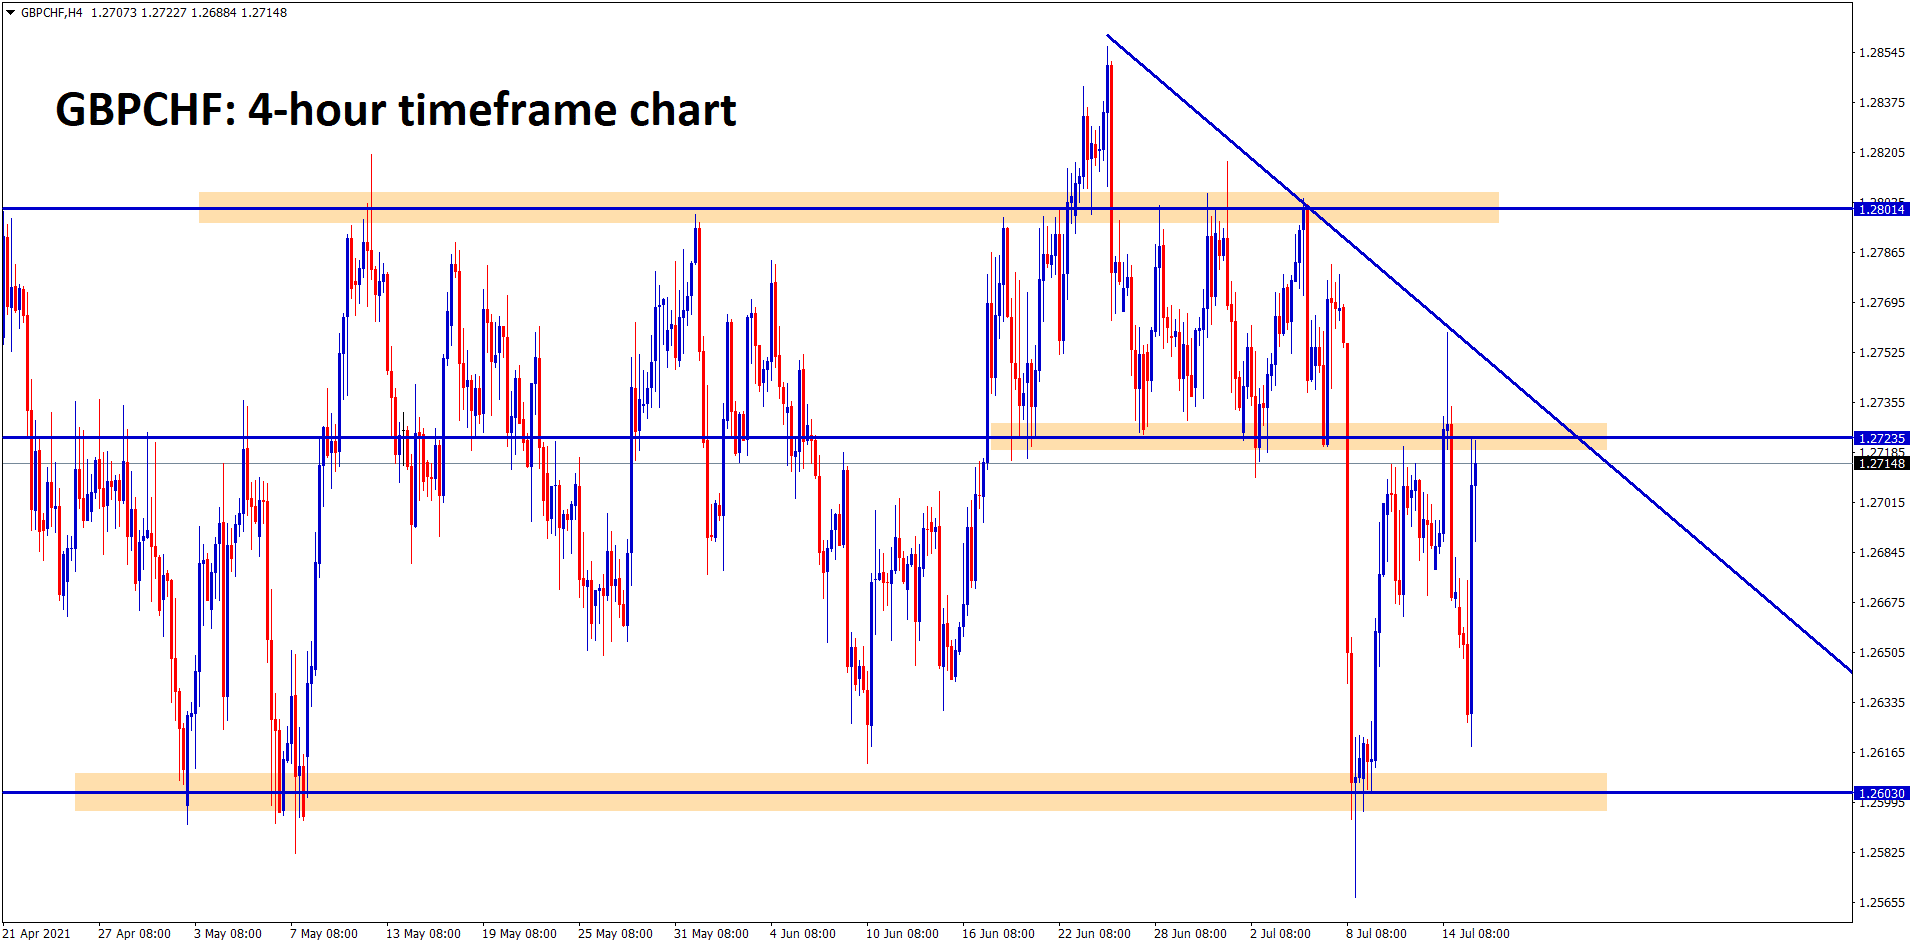 GBPCHF bounces back again to the recent resistance level for the second time This pair is mostly ranging at the moment